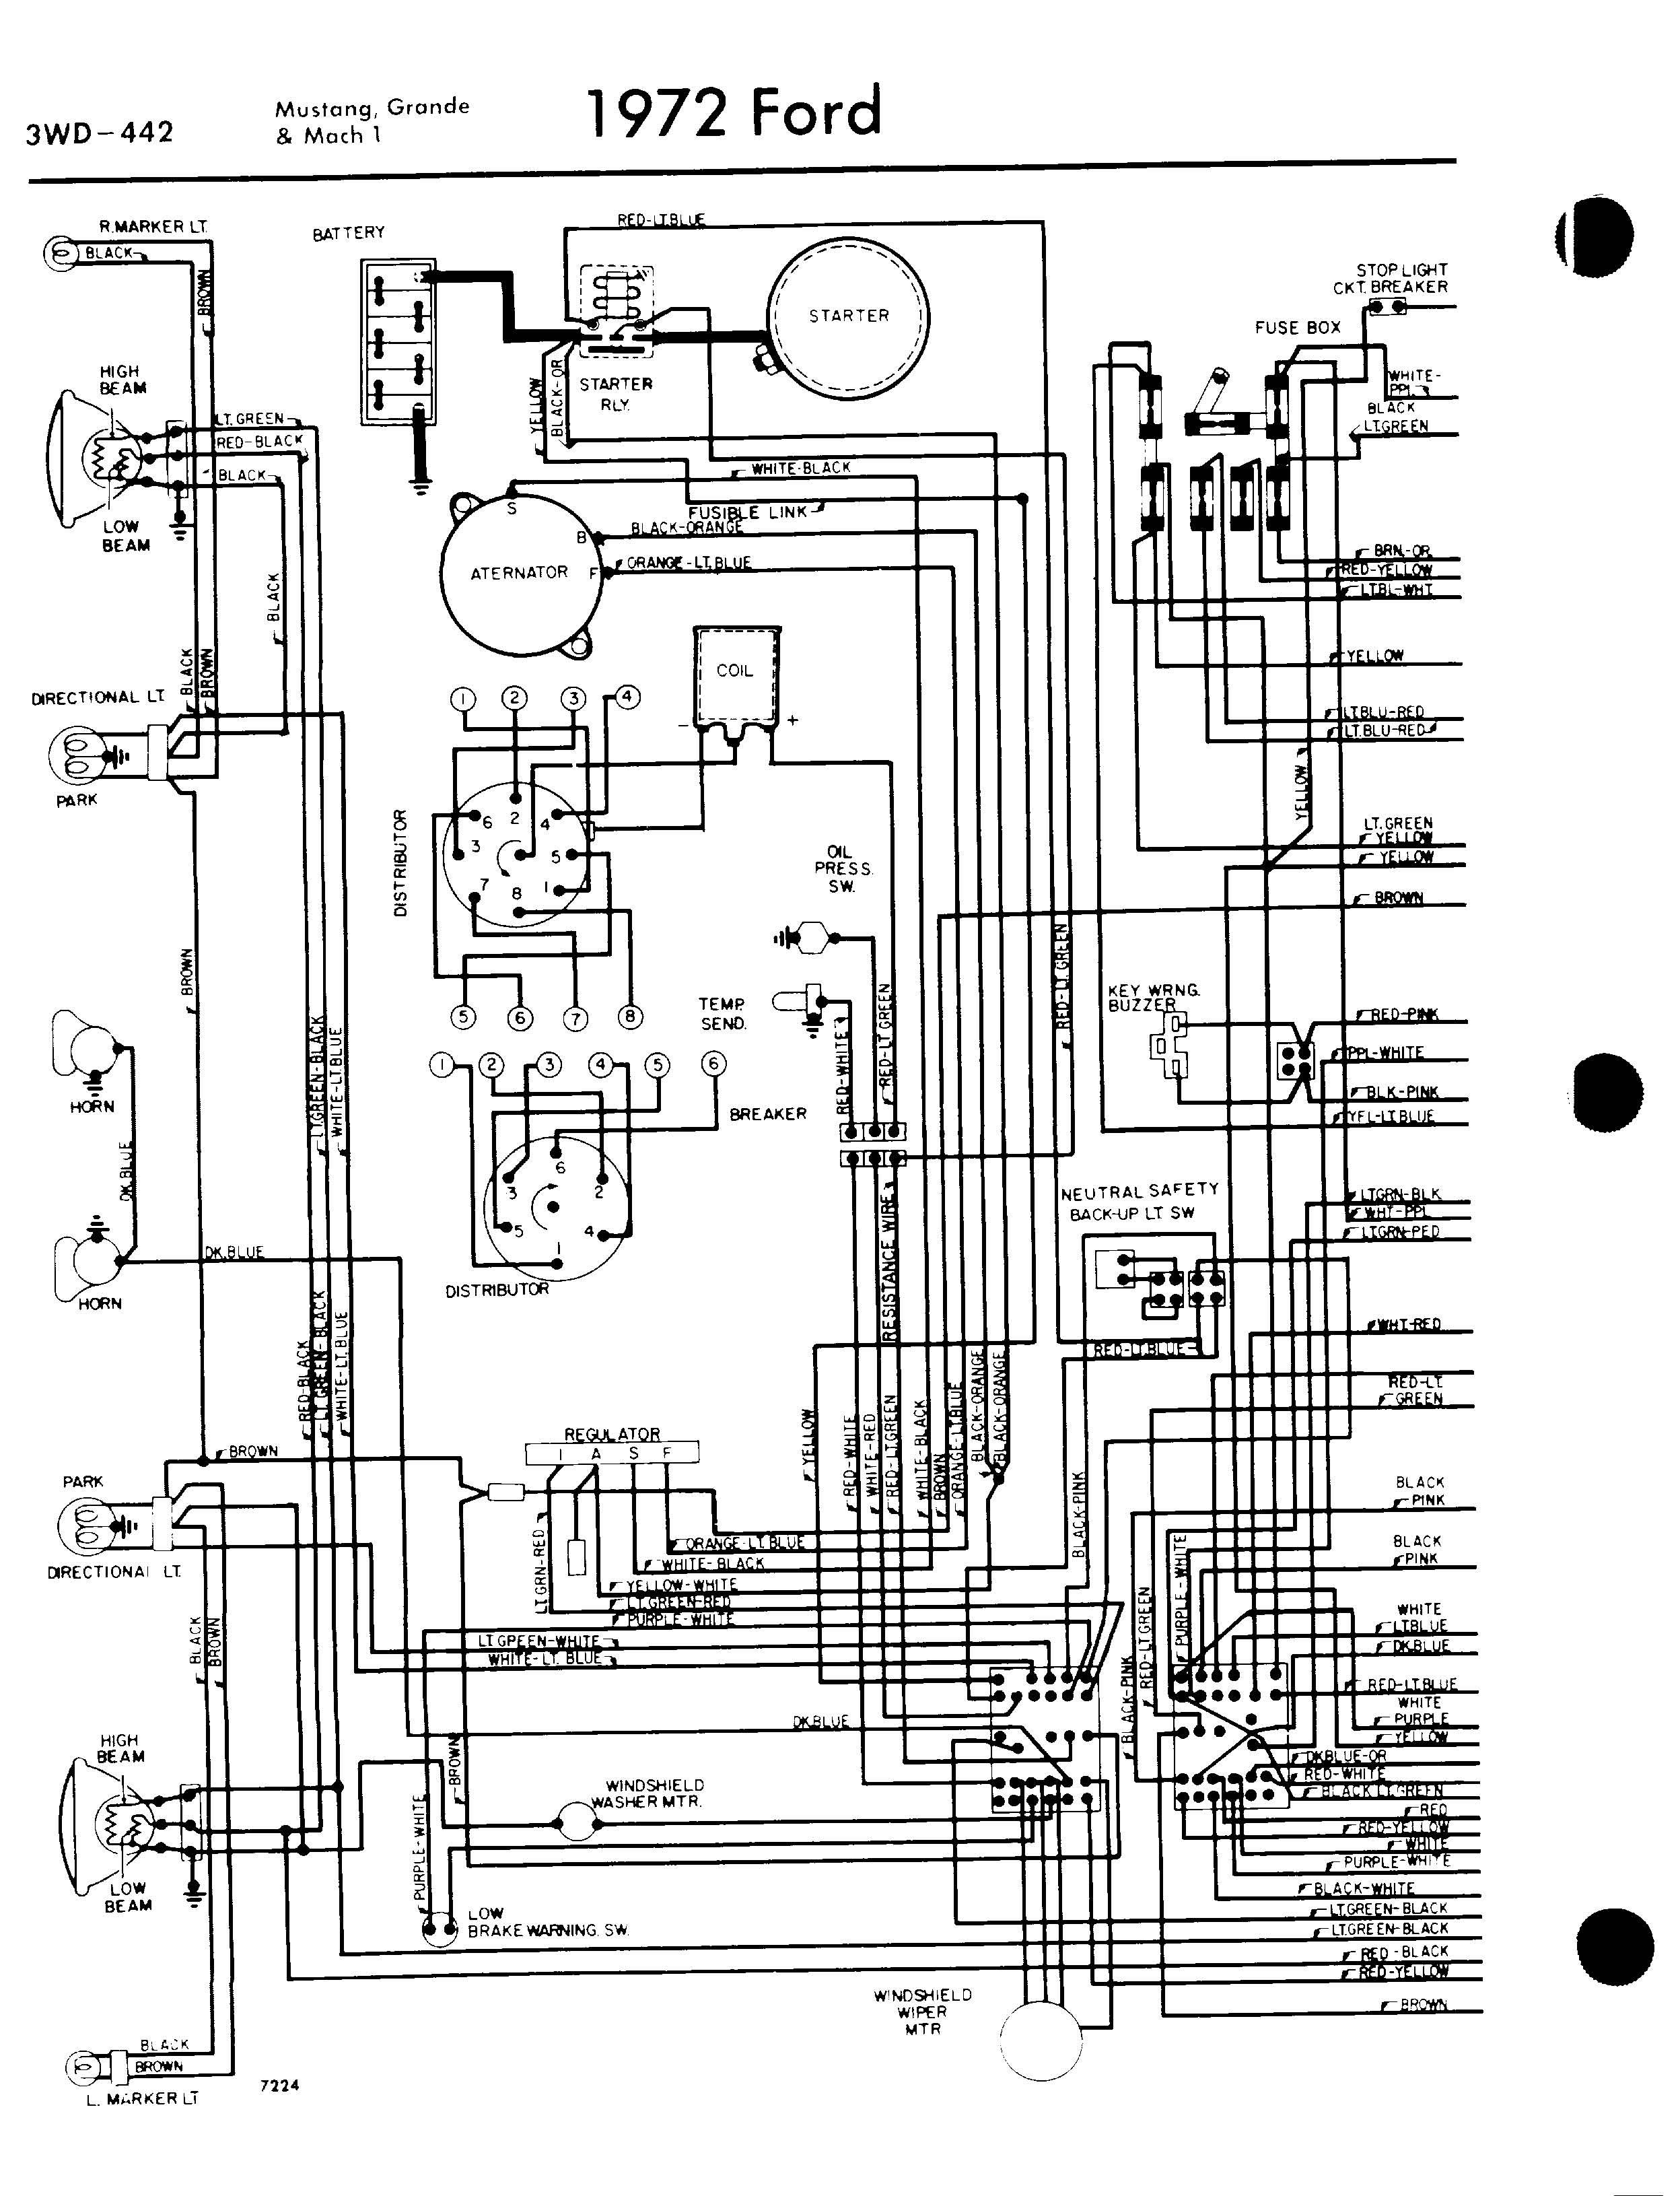 71af7a58e095e6a7716b32f1b23e8bd2 72 mach1 alternator wire harness diagram yahoo search results Ford Alternator Wiring Diagram at nearapp.co